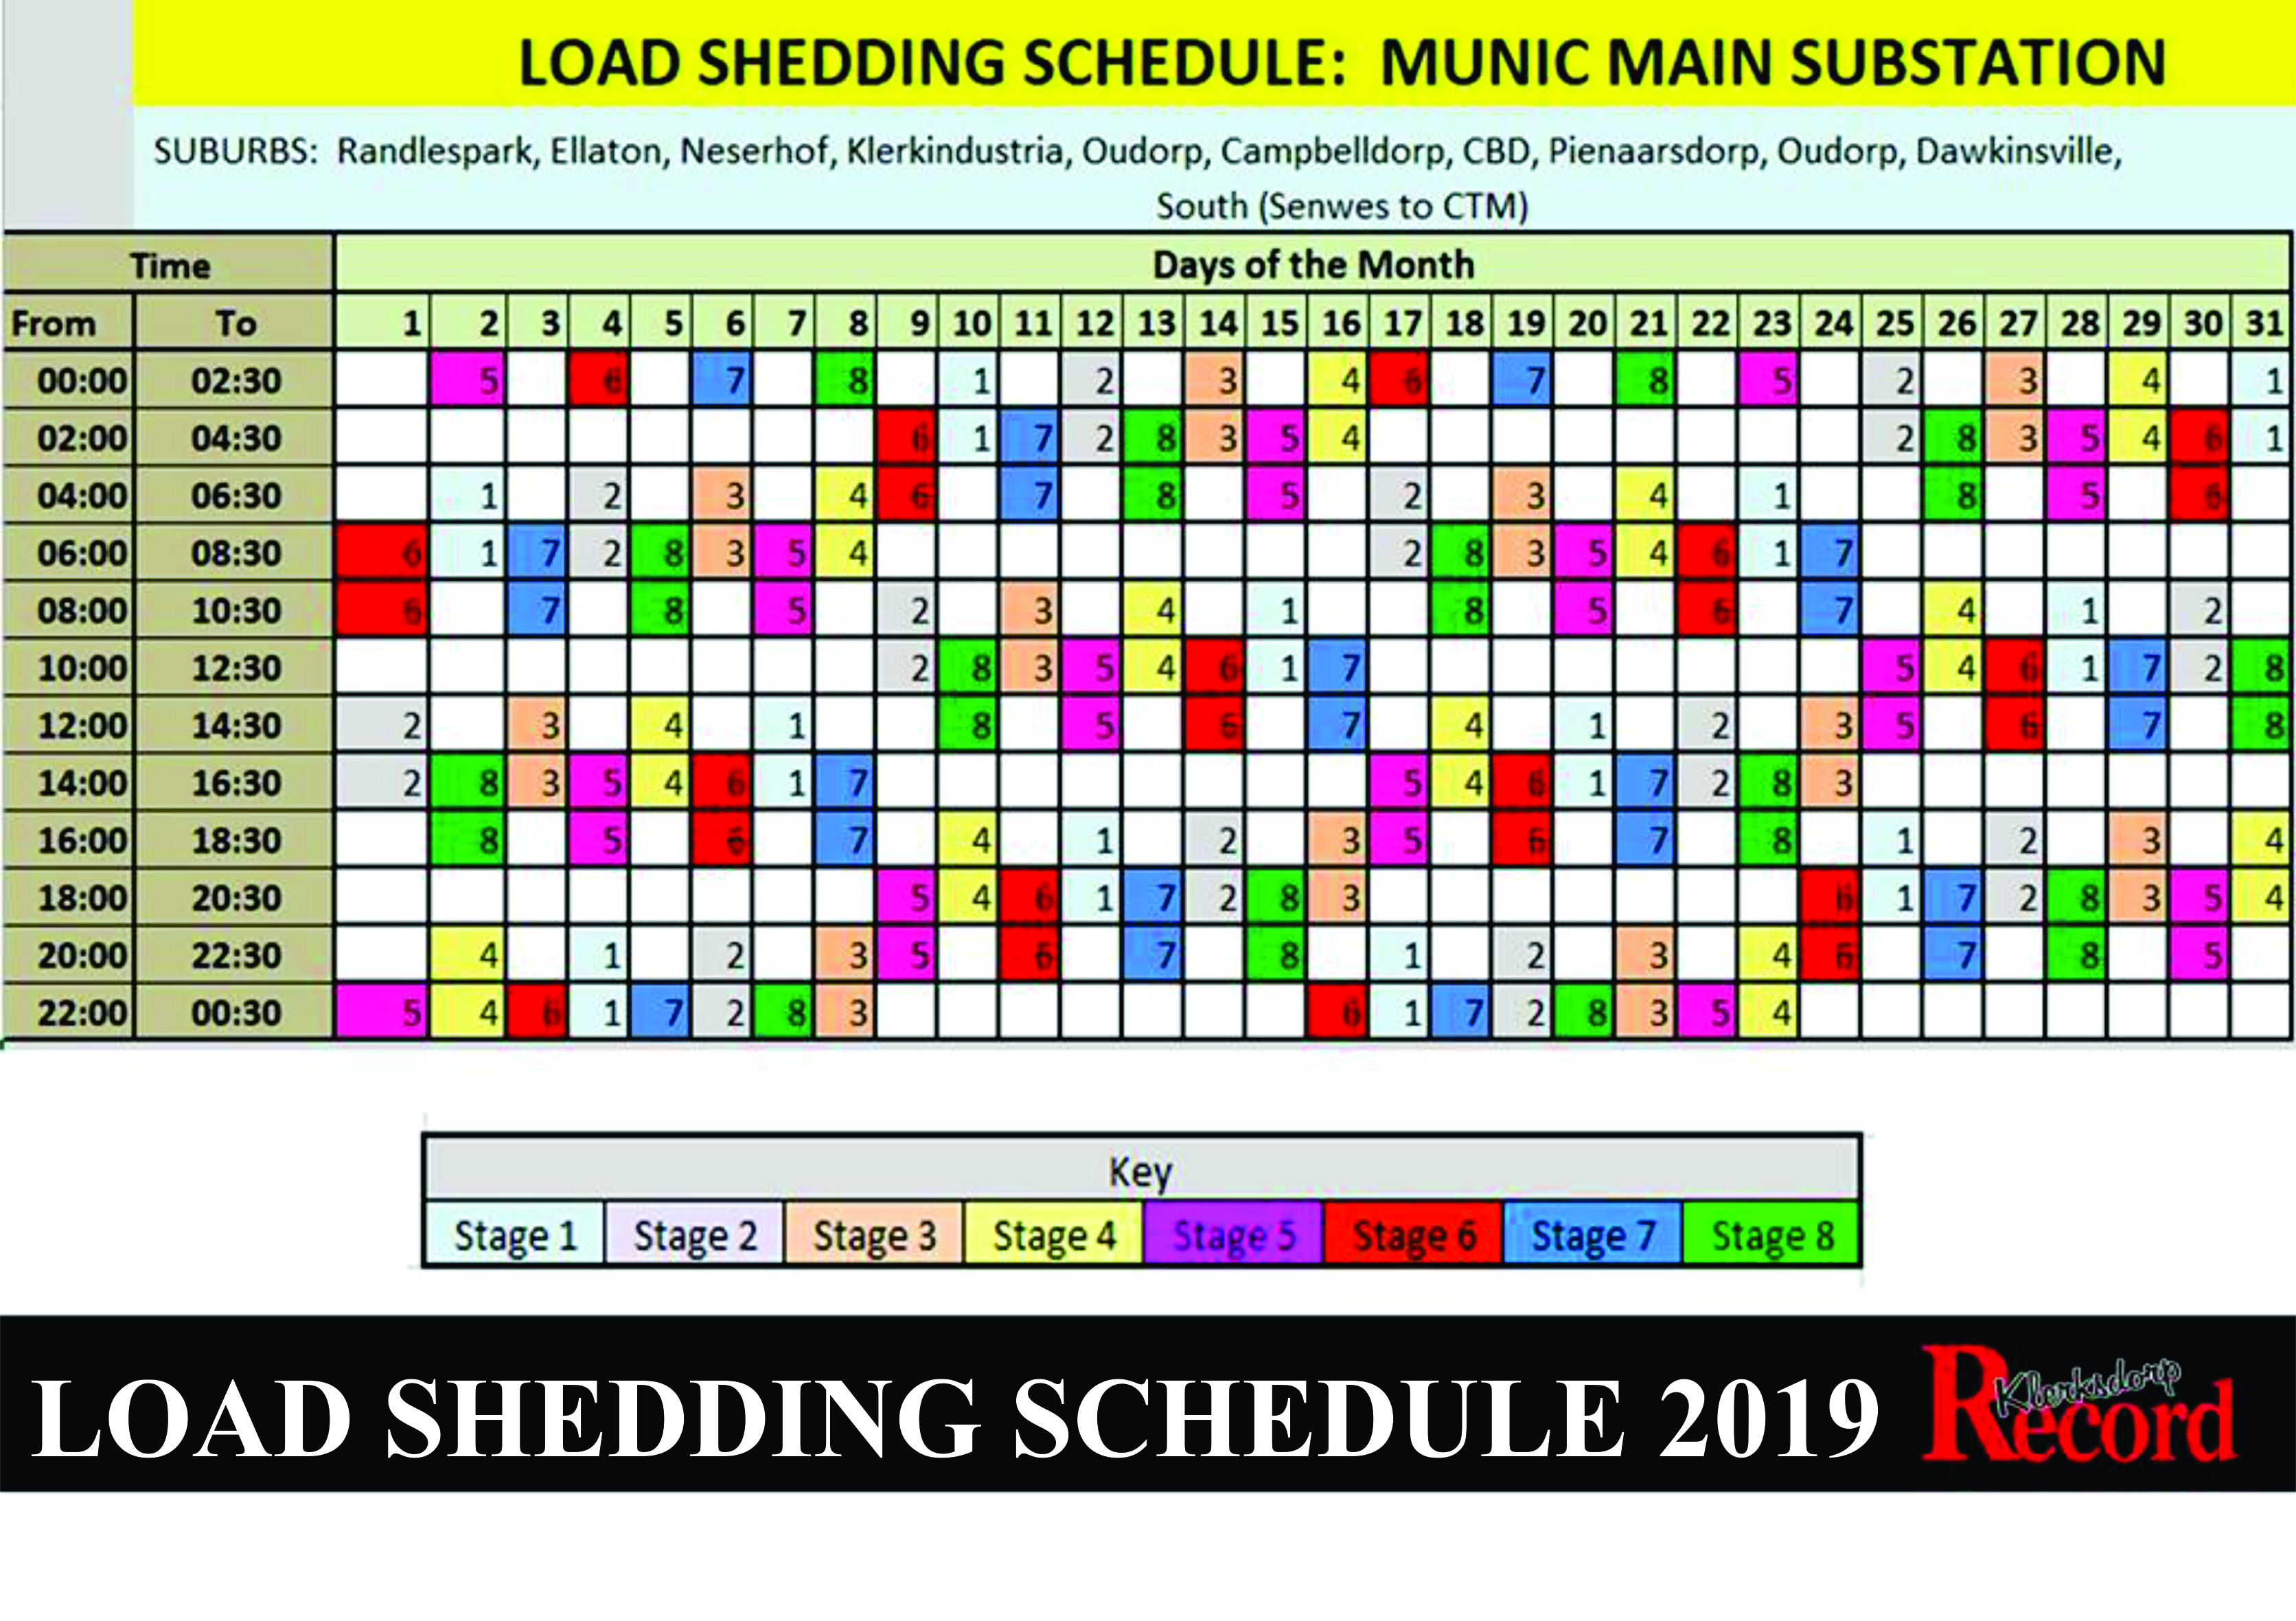 Load Shedding Schedules 2019